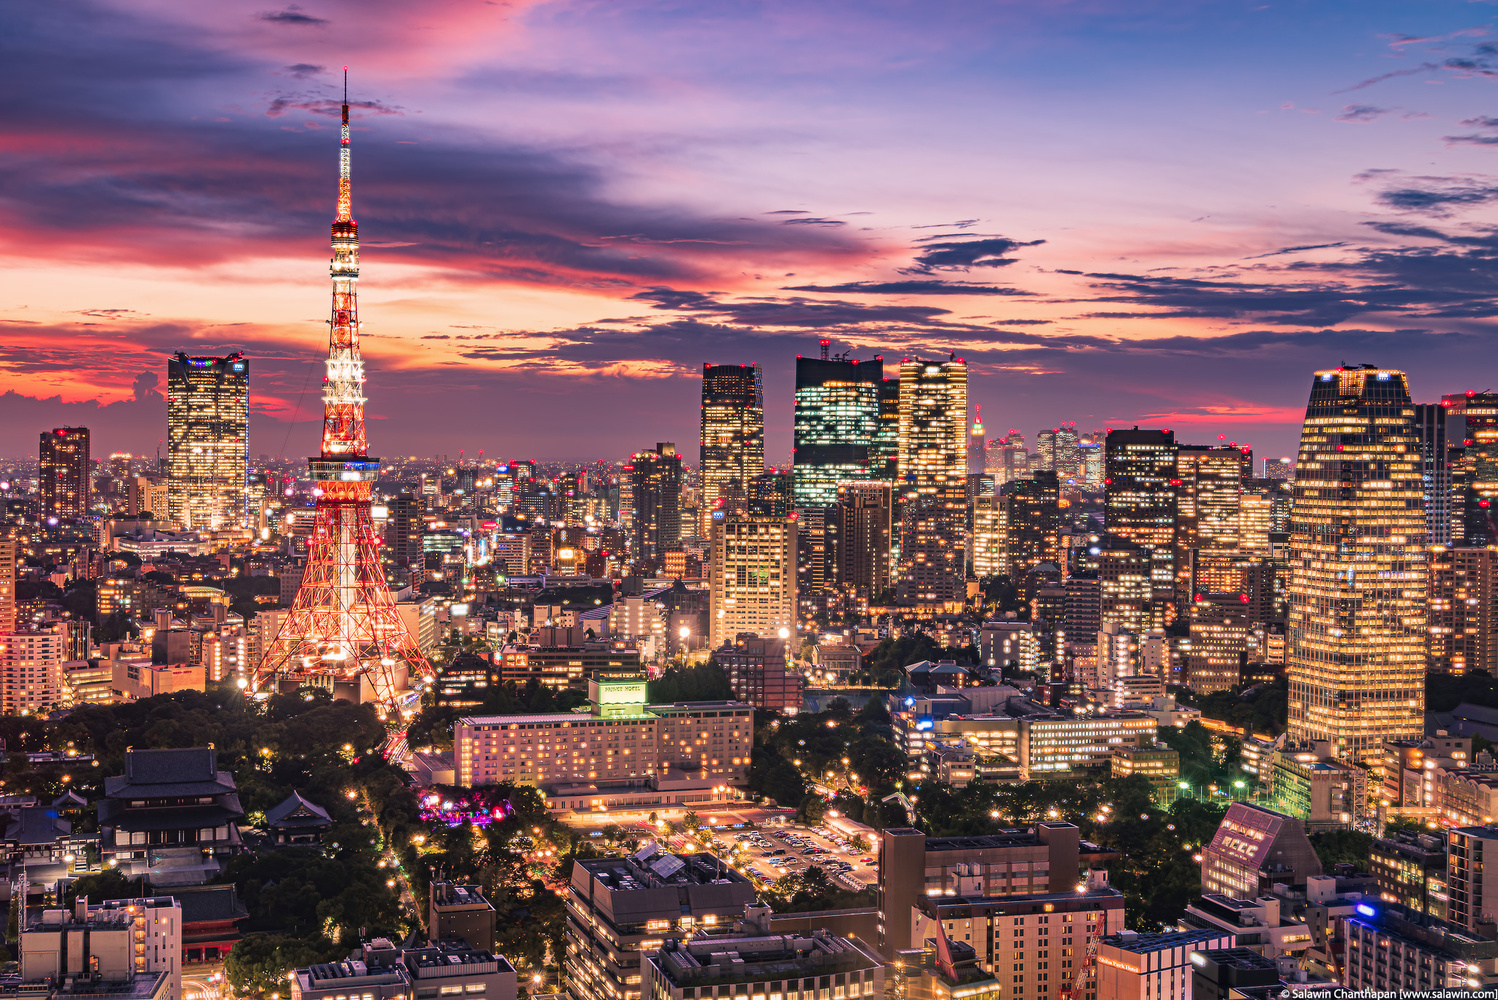 Tokyo Tower with dramatic sunset sky by Salawin Chanthapan